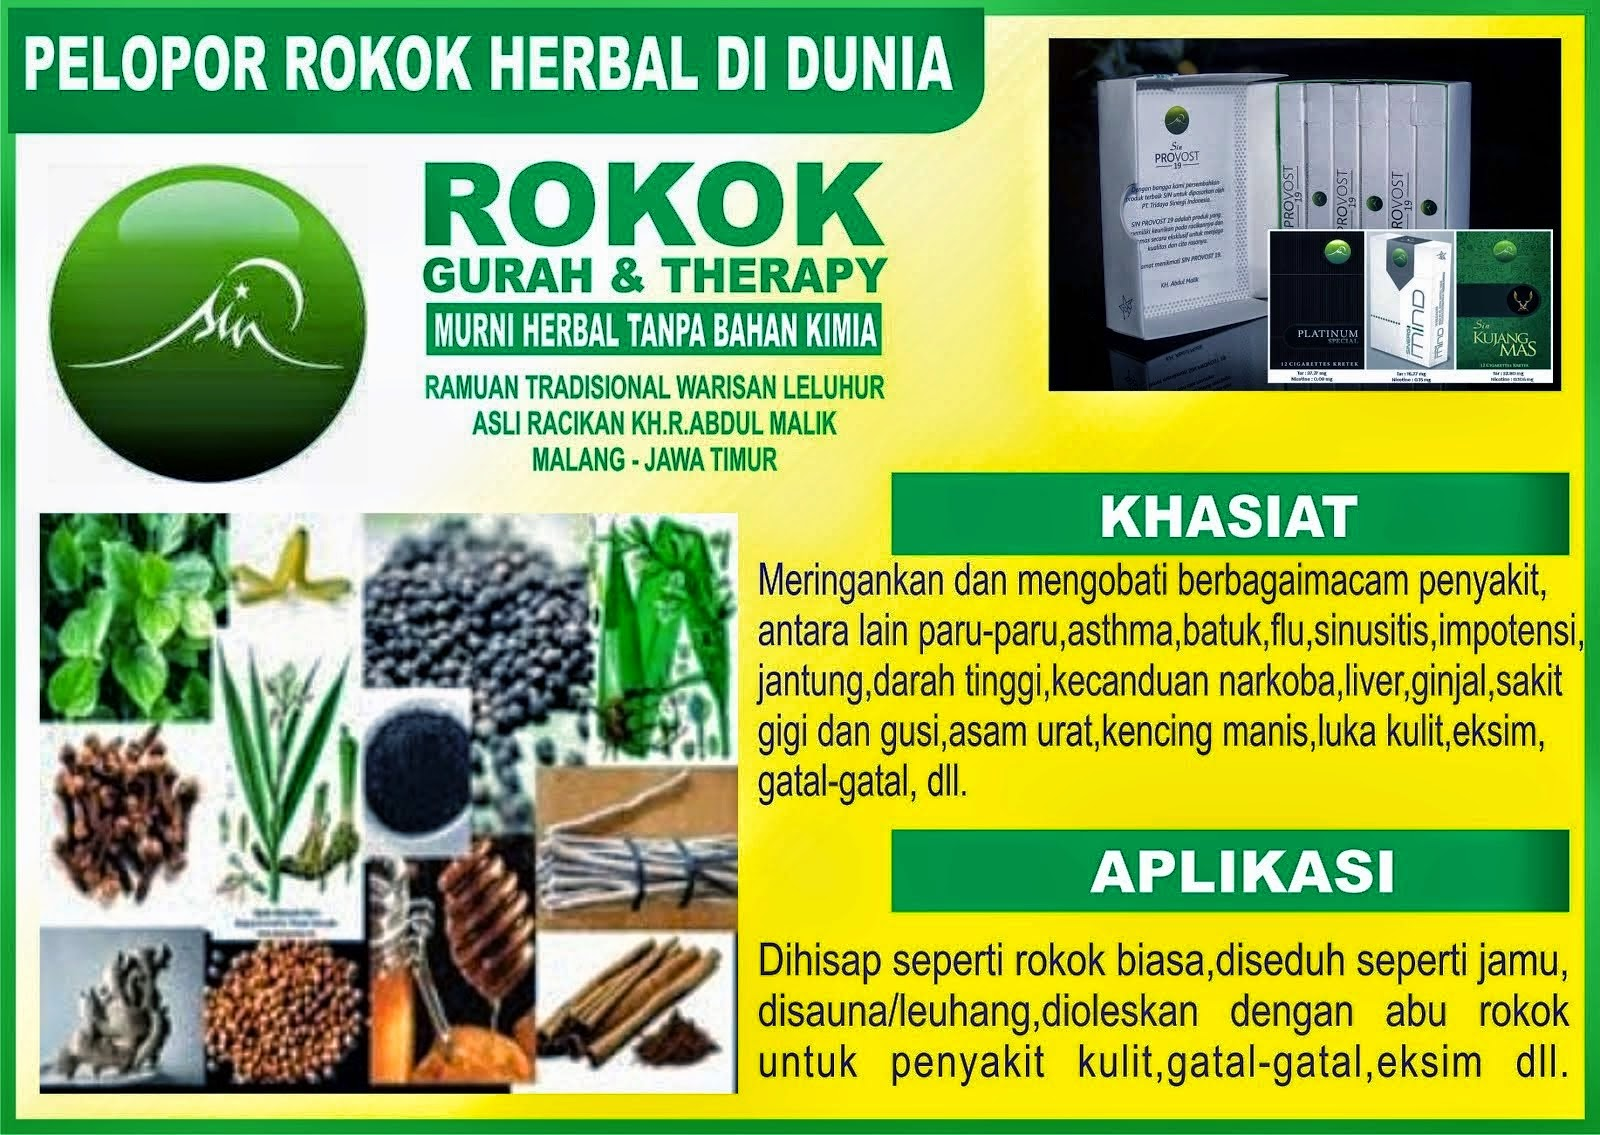 ROKOK HERBAL GURAH DAN TERAPI